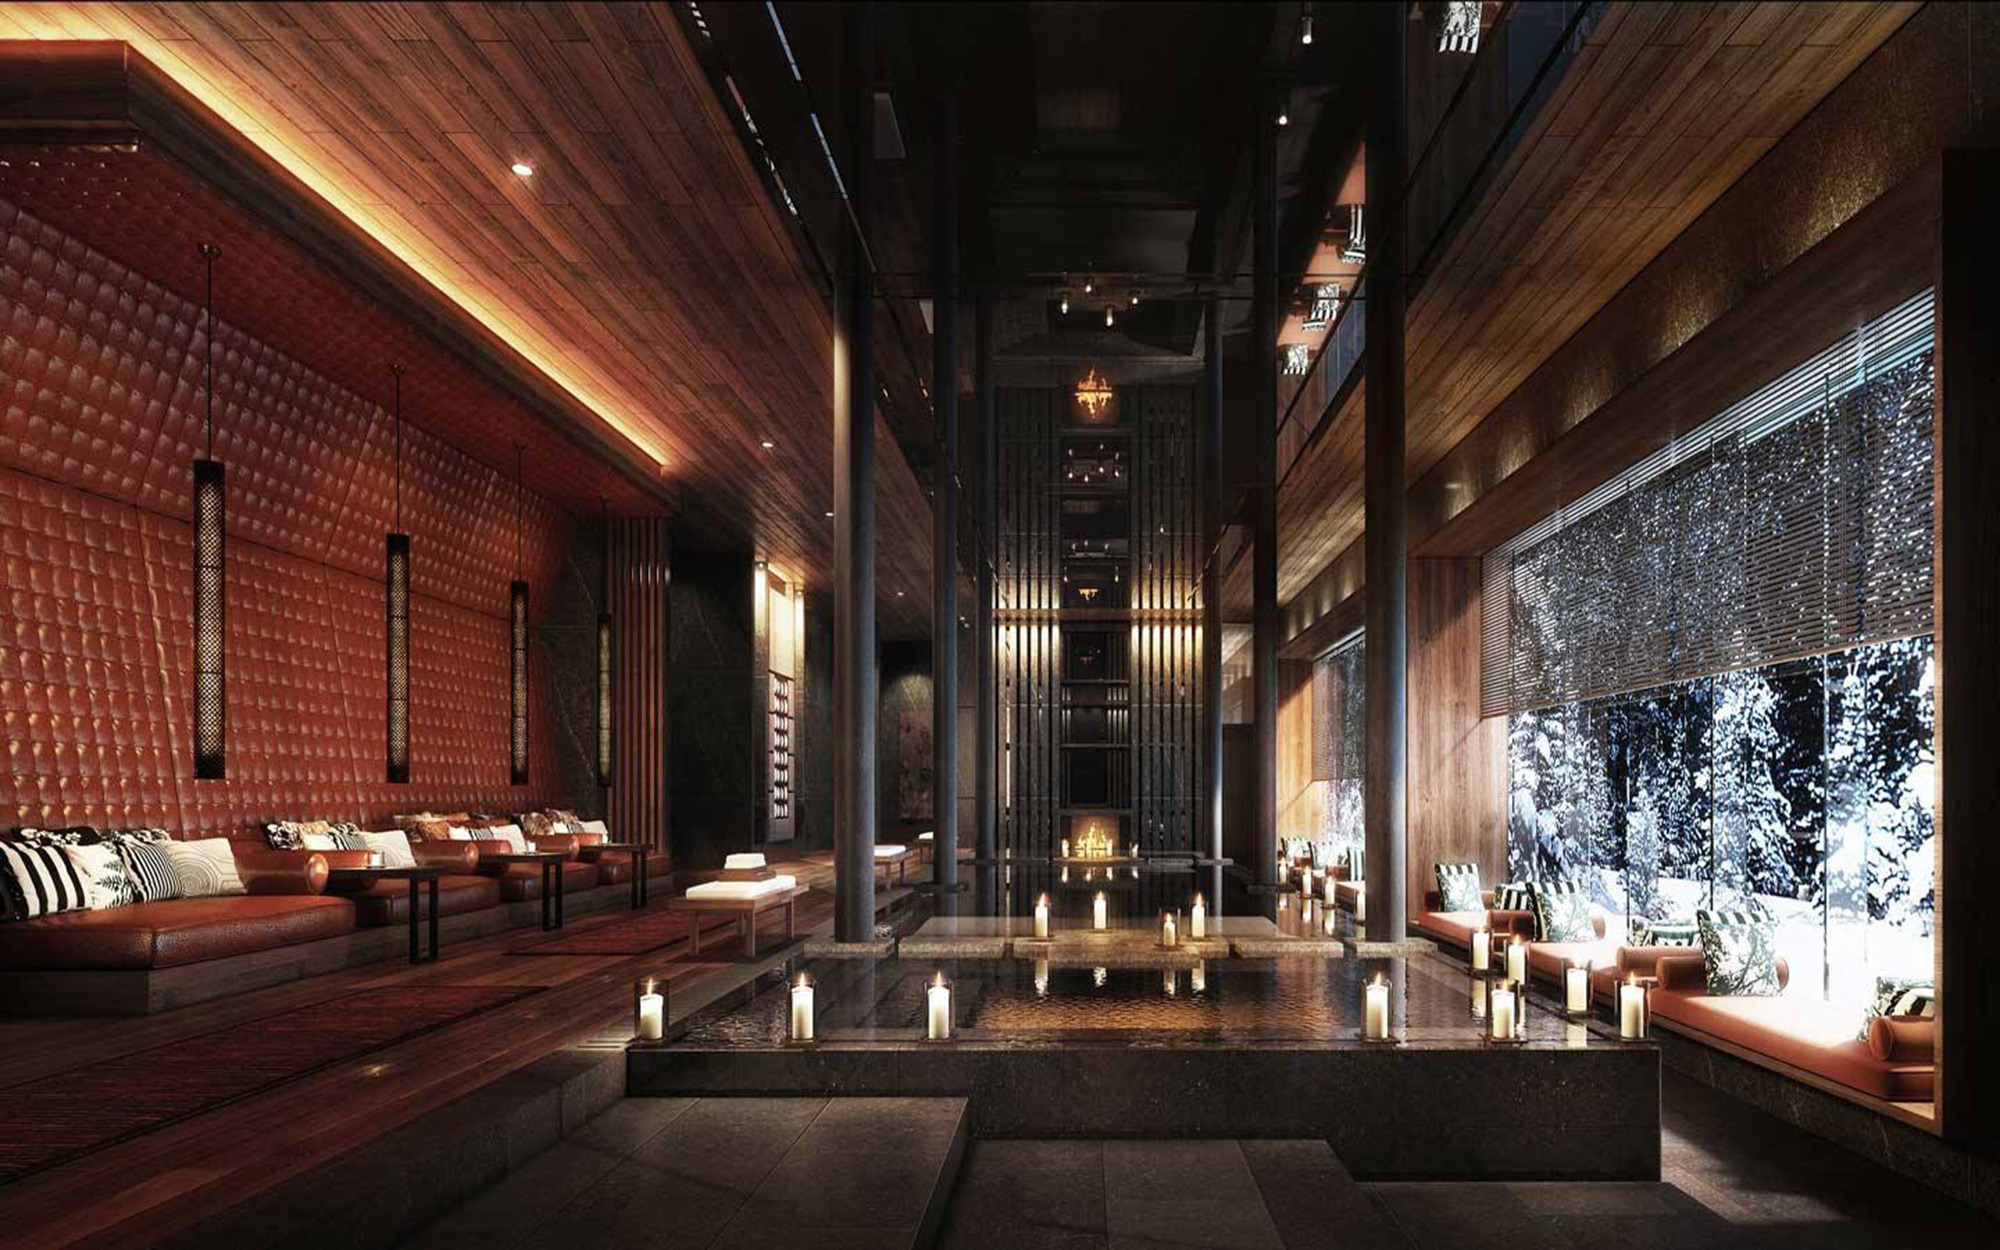 Luxury Vacations: The Chedi Andermatt